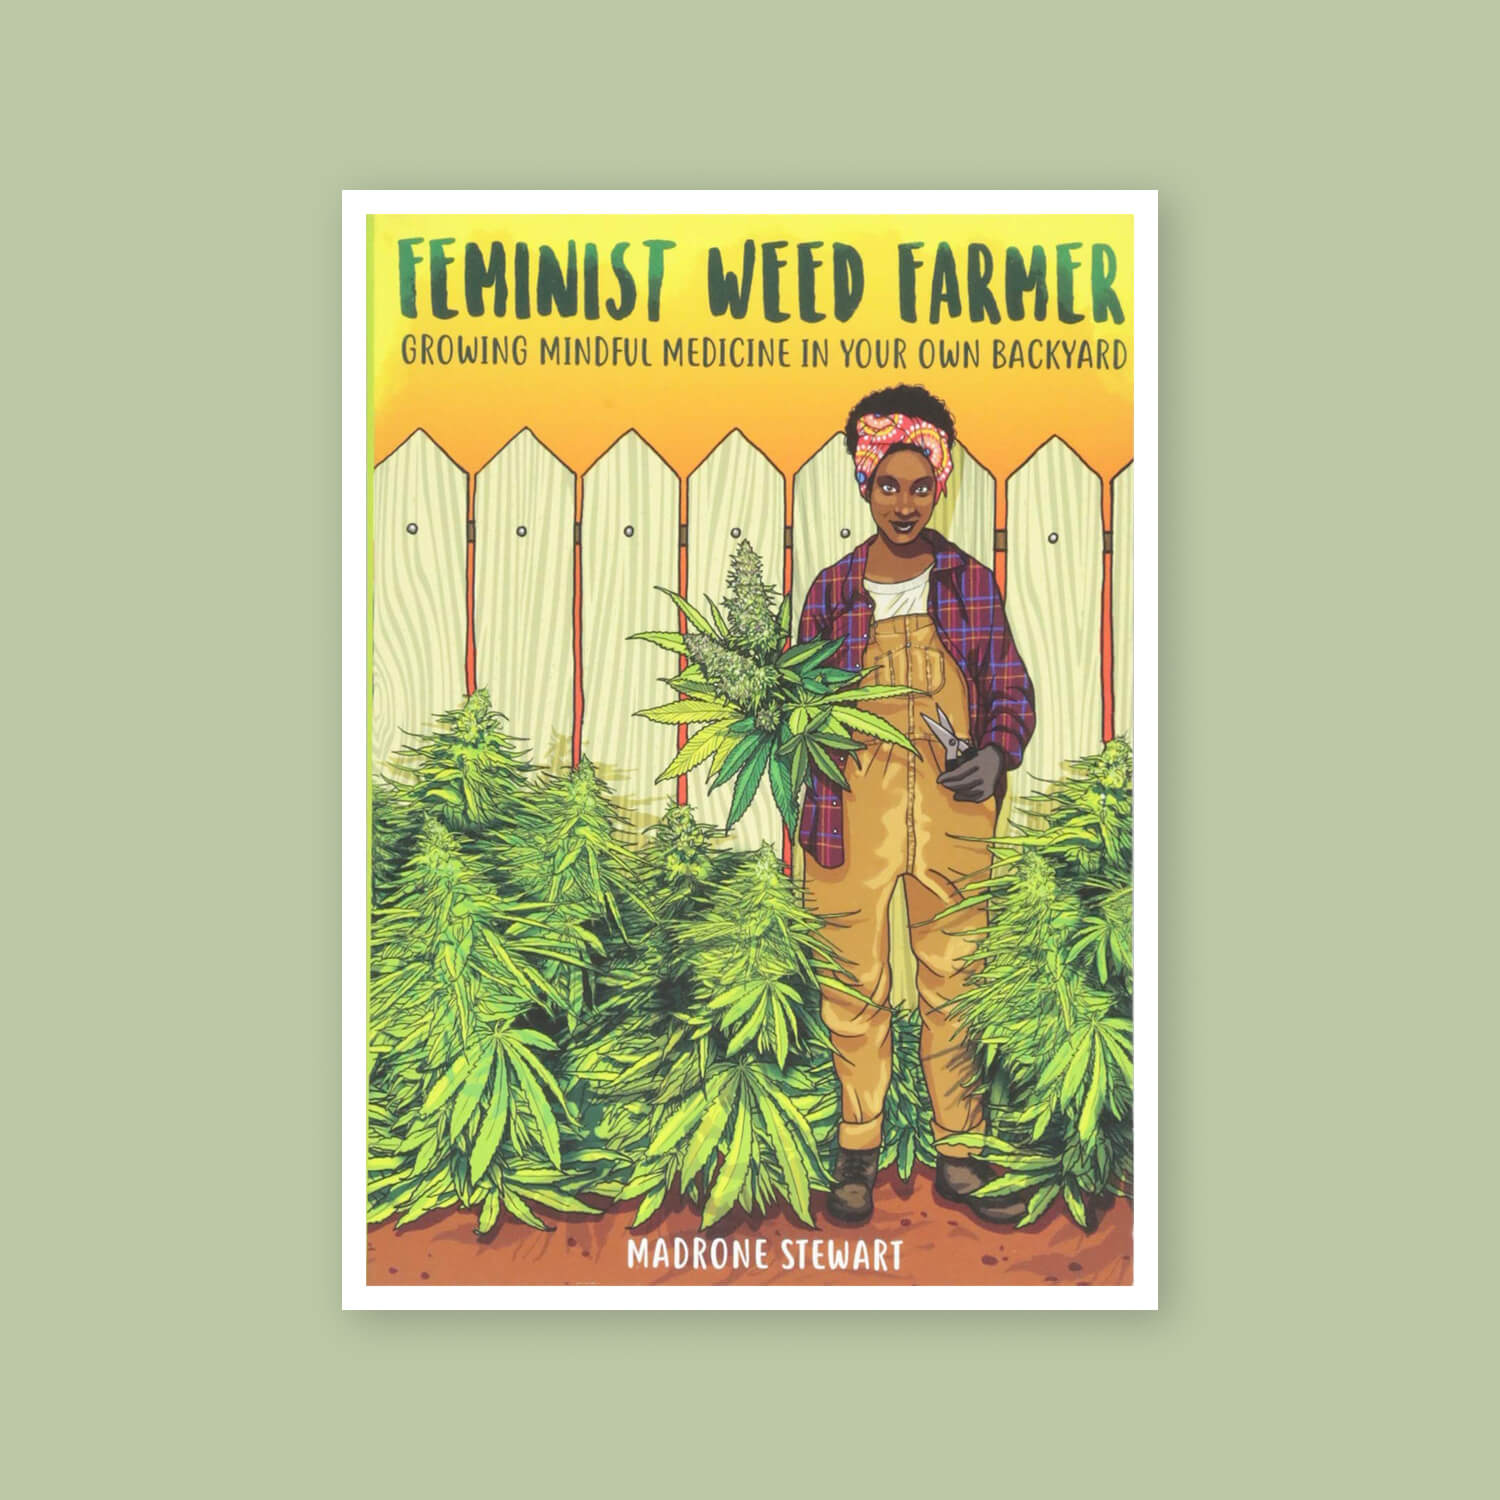 Feminist Weed Farmer - Goldleaf Bookshelf